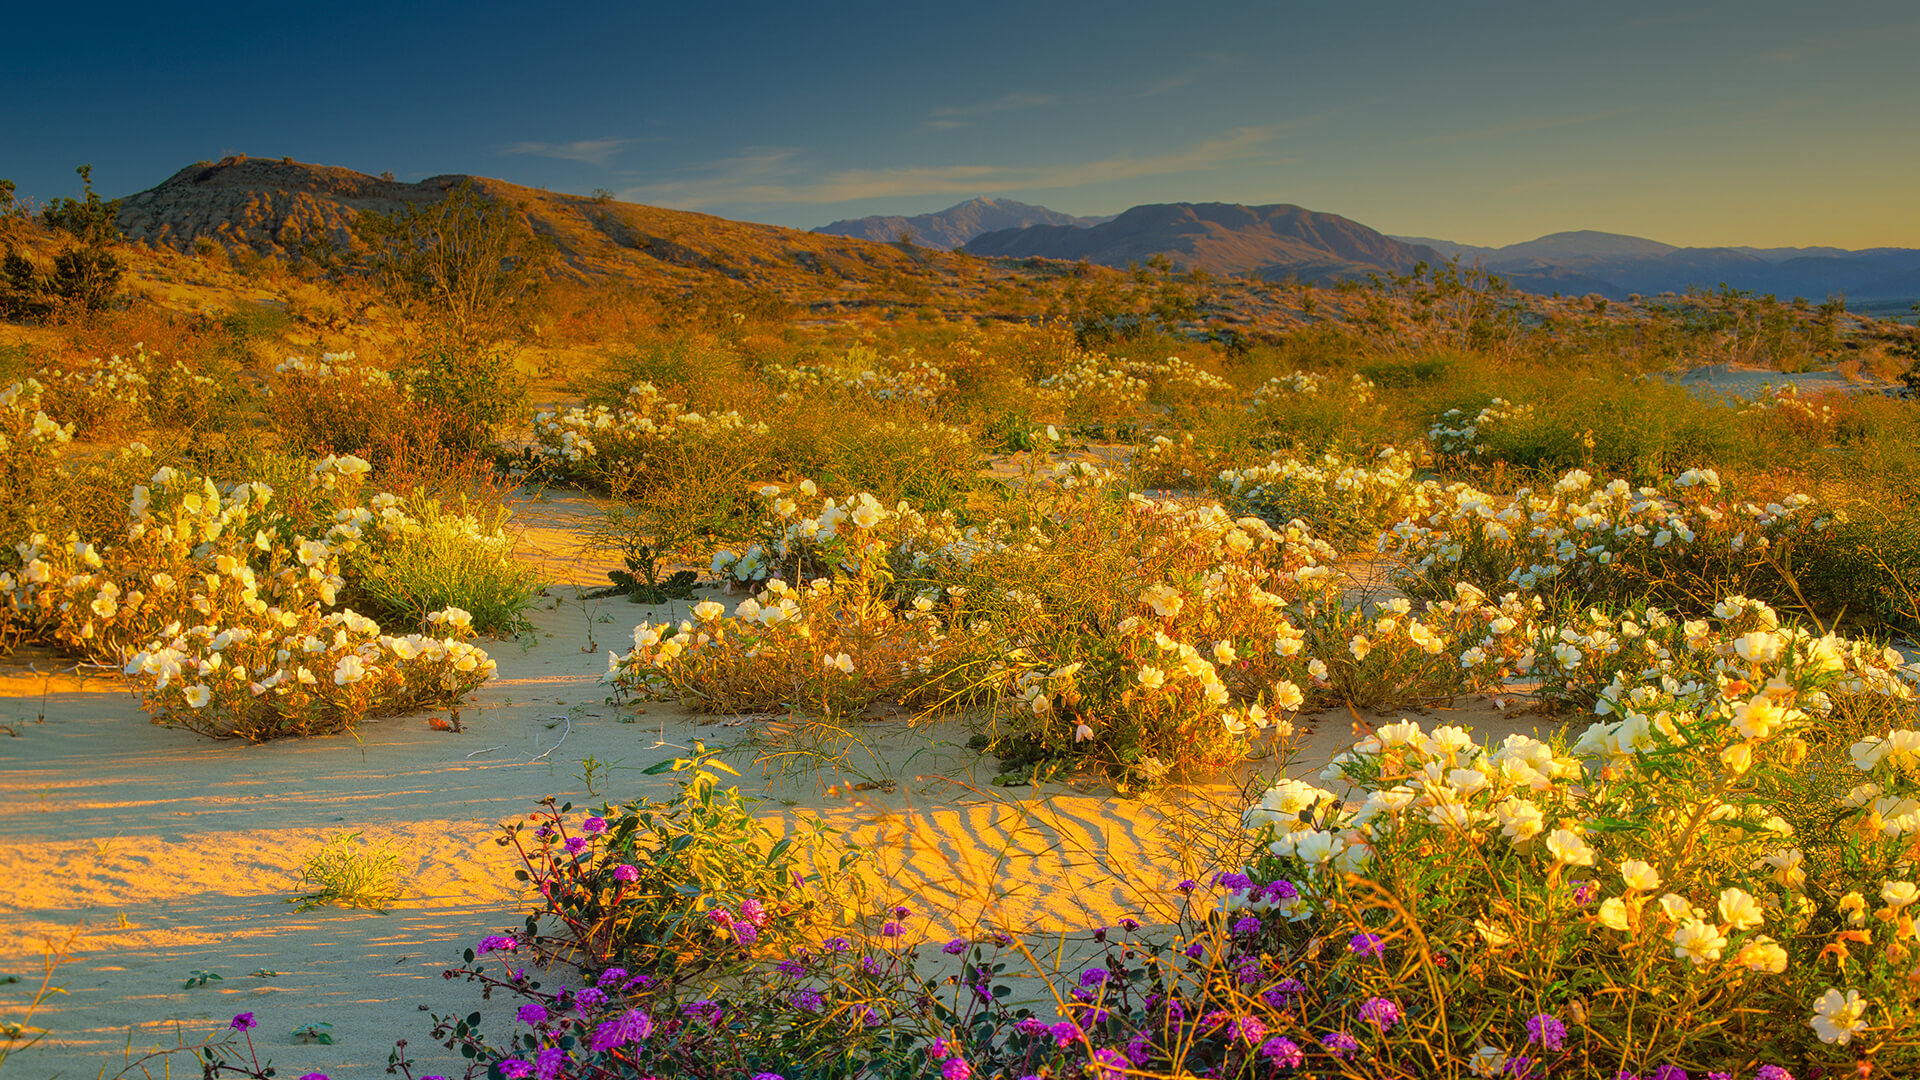 Anza Borrego Desert in bloom